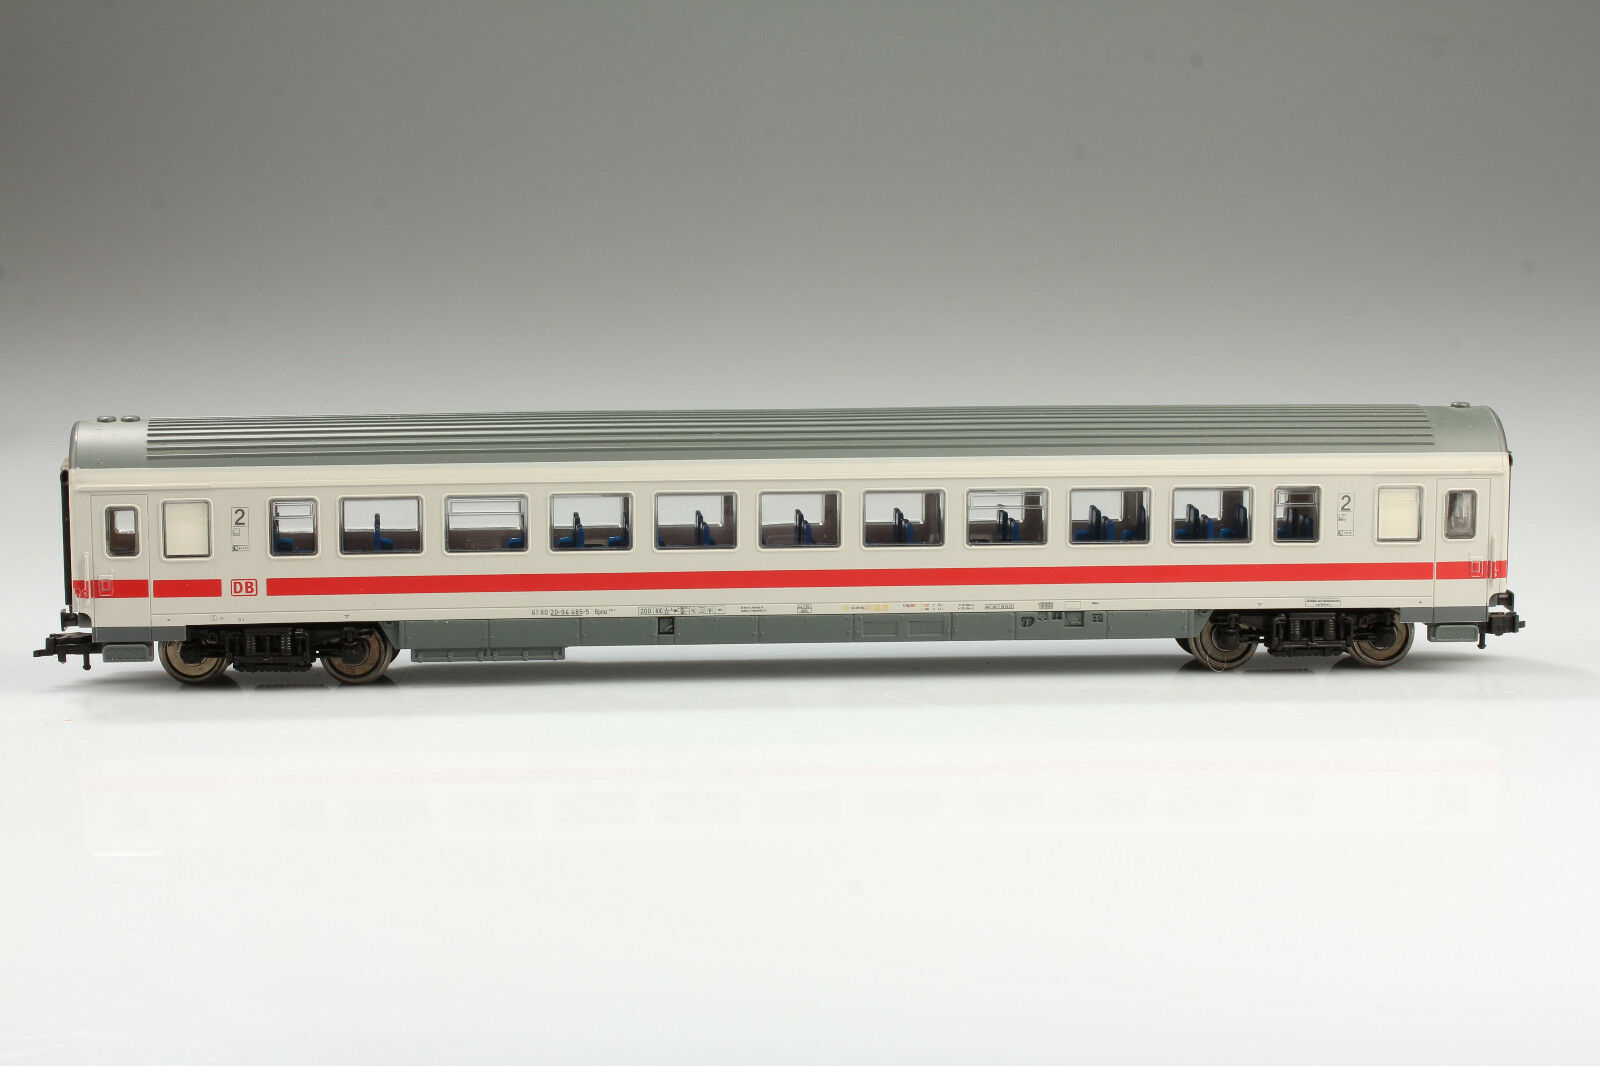 Piko H0 Ic 2Kl. Passenger Cars Db 61 80 20-94 485-5 Dirt Scratches without